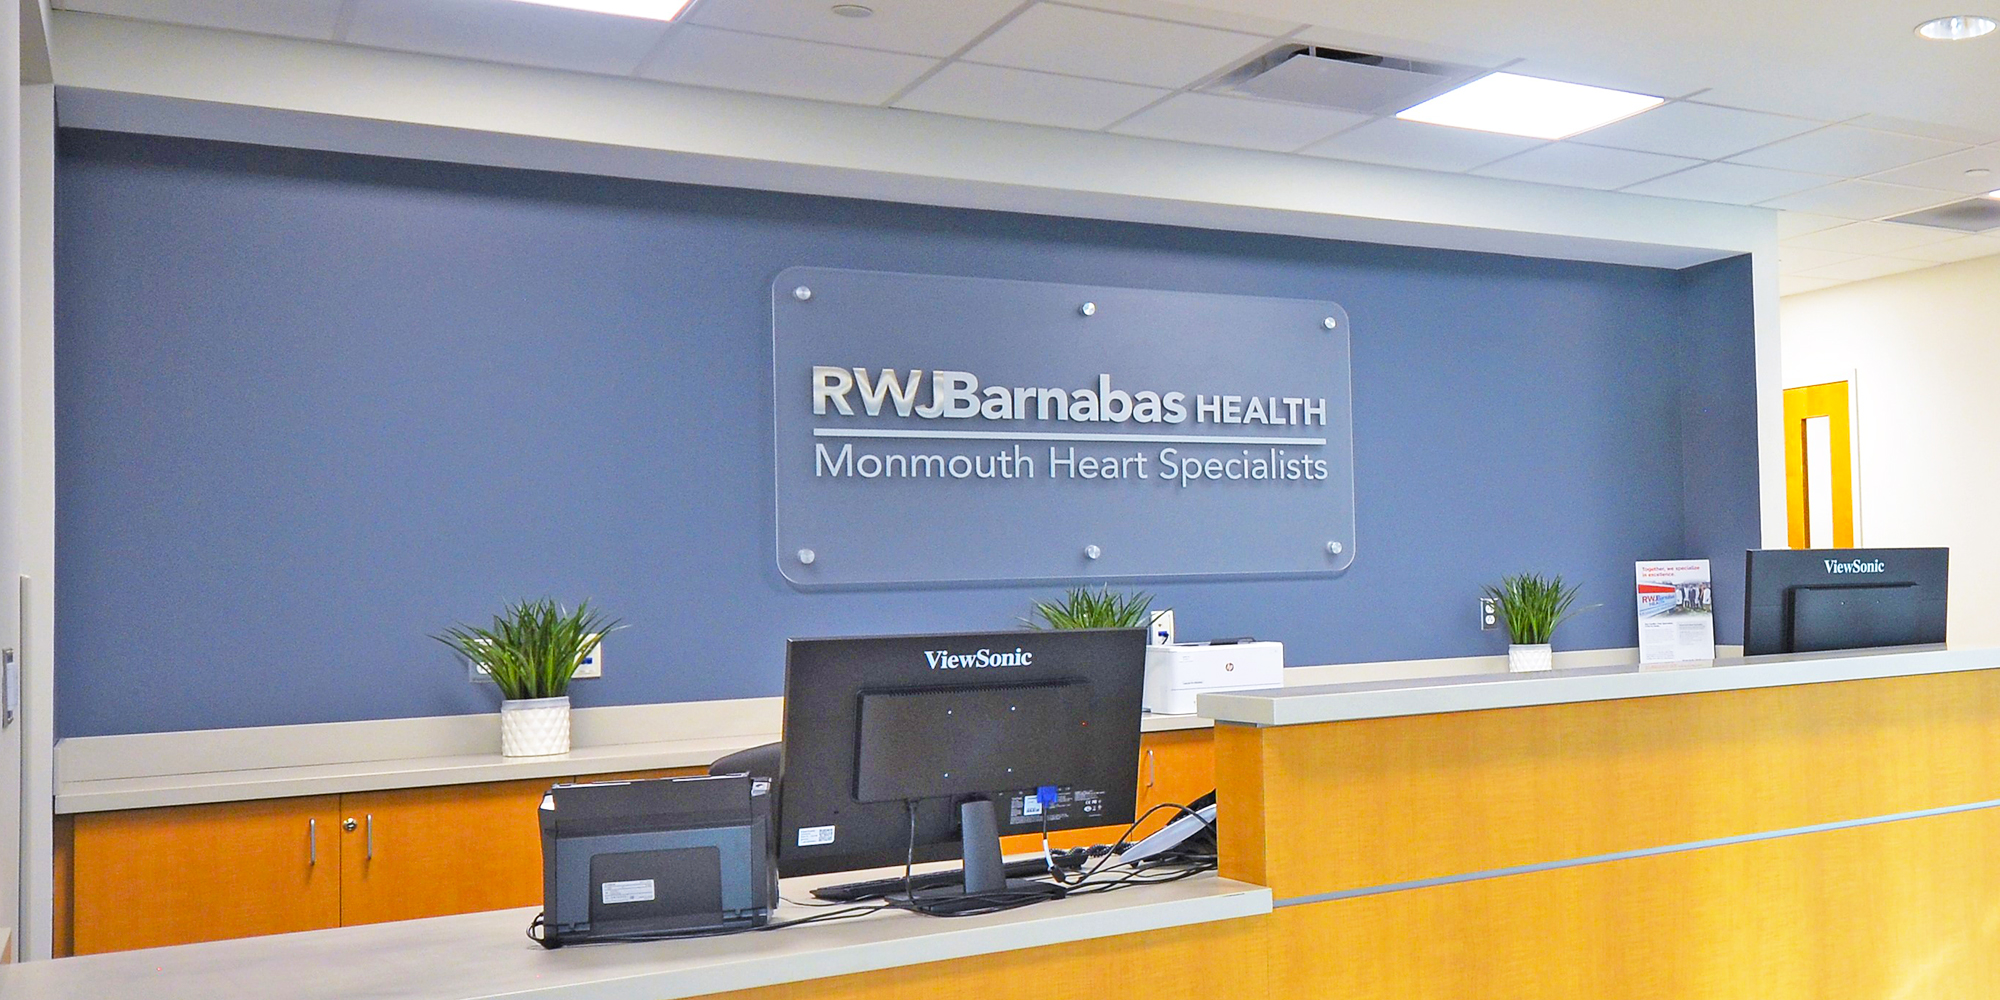 PROJECTS-1-RWJBH-MONMOUTH-HEART